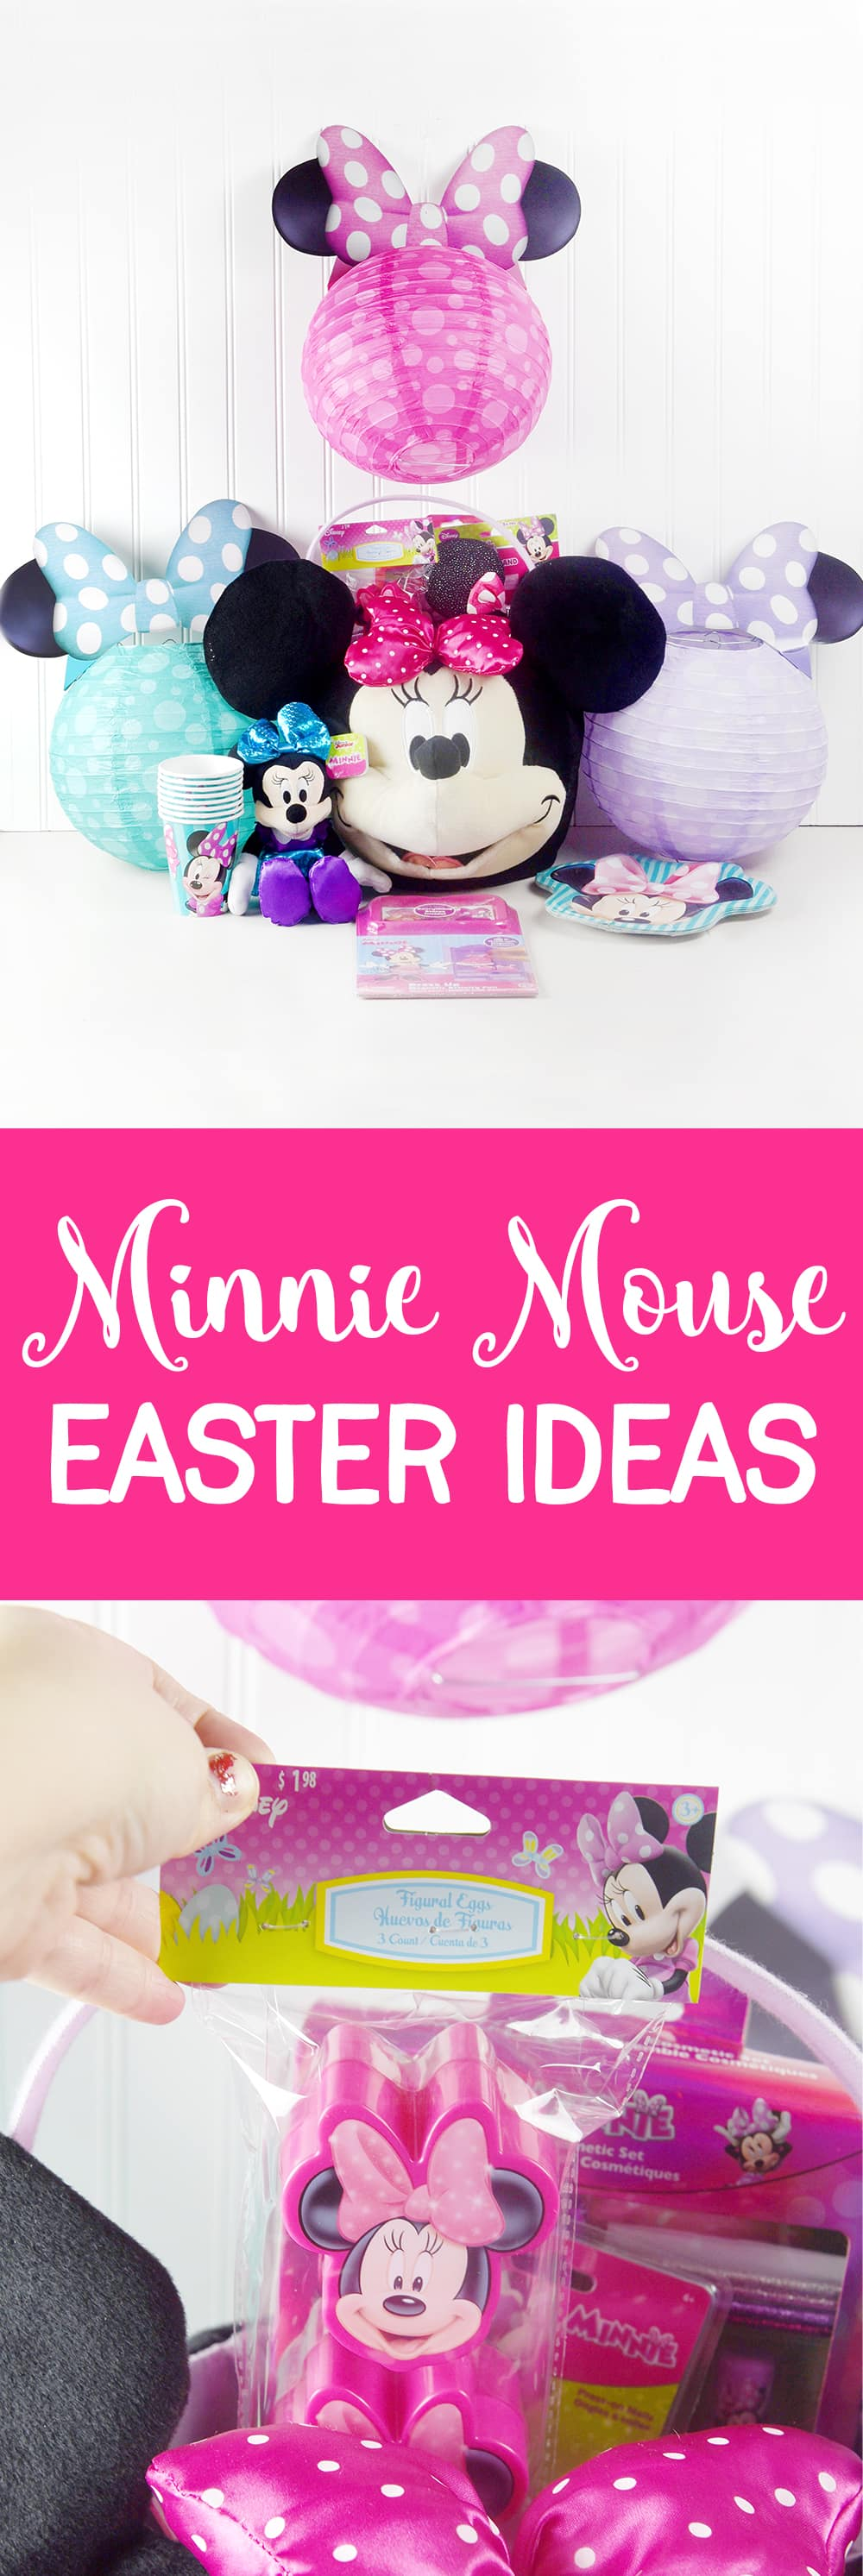 Minnie Mouse Easter Ideas! Fun ideas for the Minnie Mouse lover at Easter!